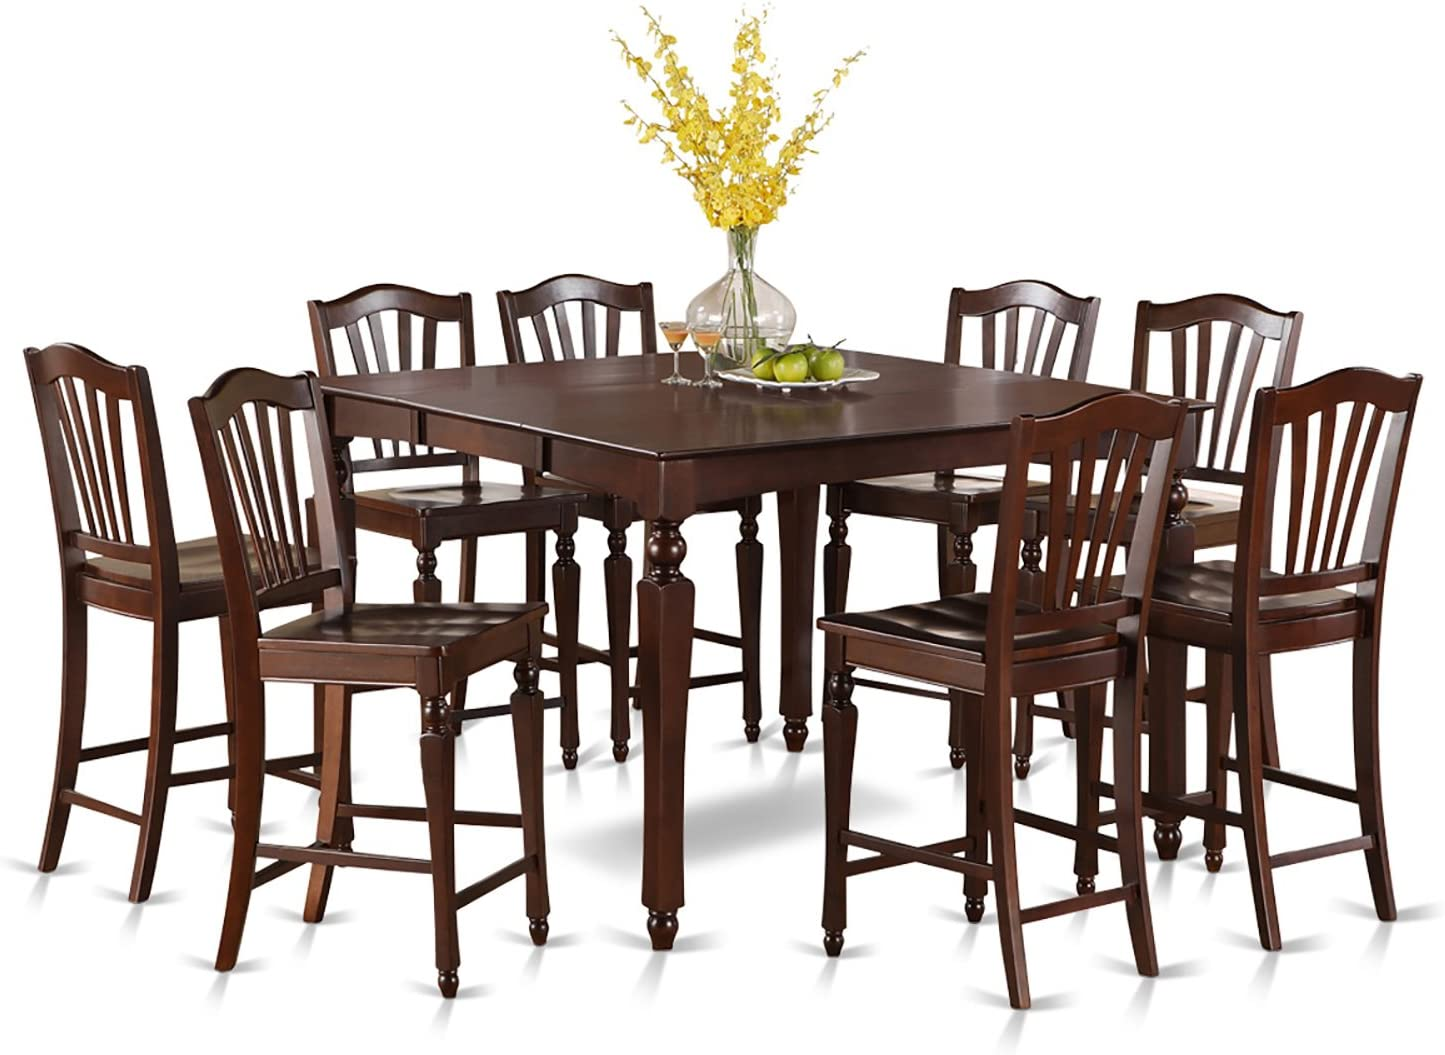 Amazon.com: 9 PC Counter Height Table Set-Square Gathering Tablealong With 8 Kitchen Counter Chairs: Furniture & Decor